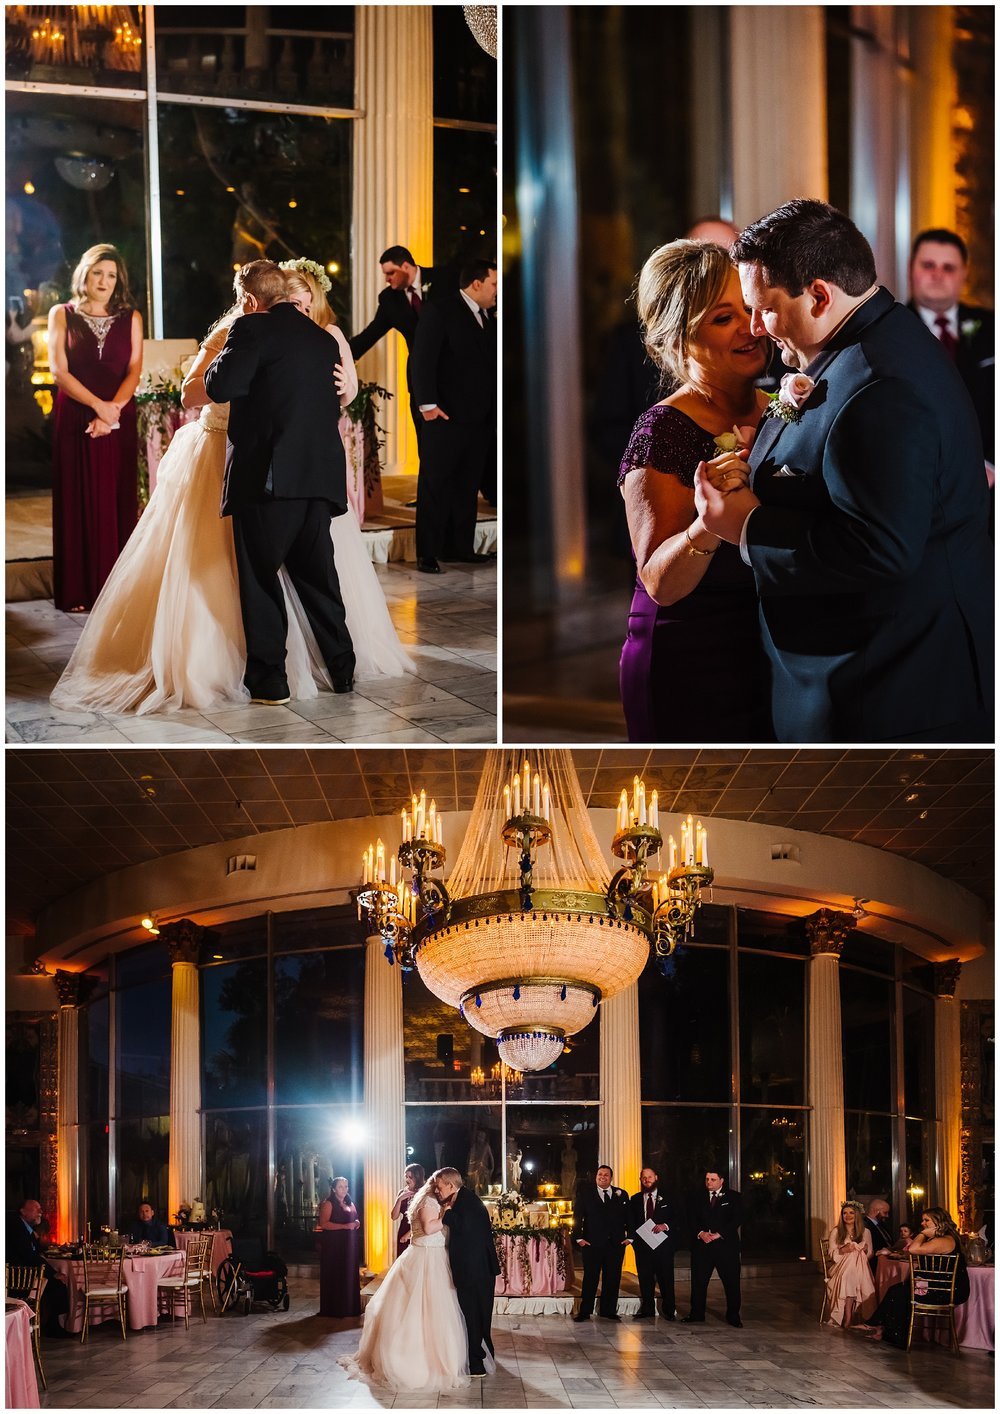 tampa-wedding-photographer-kapok-special-events-center-hayley-paige-gress-blush-gold-disney_0062.jpg